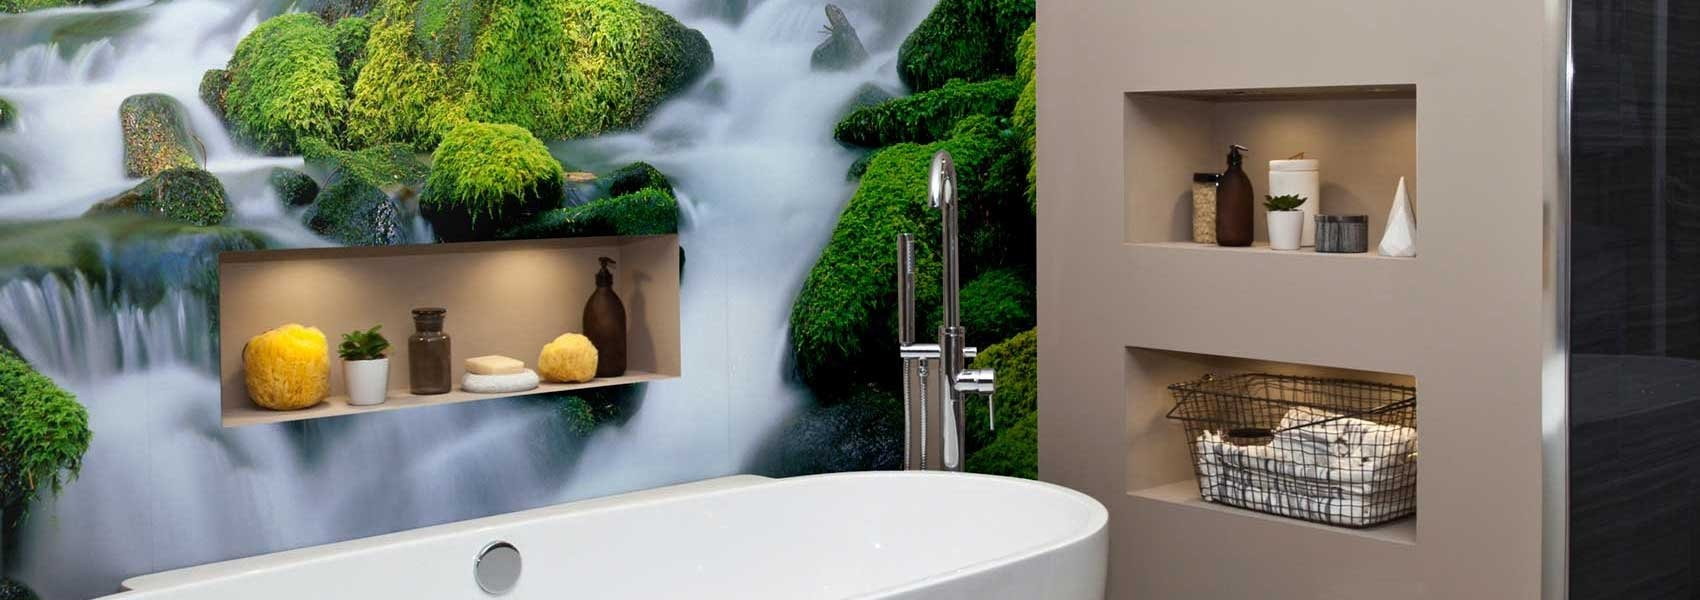 waterfall mural in home bathroom